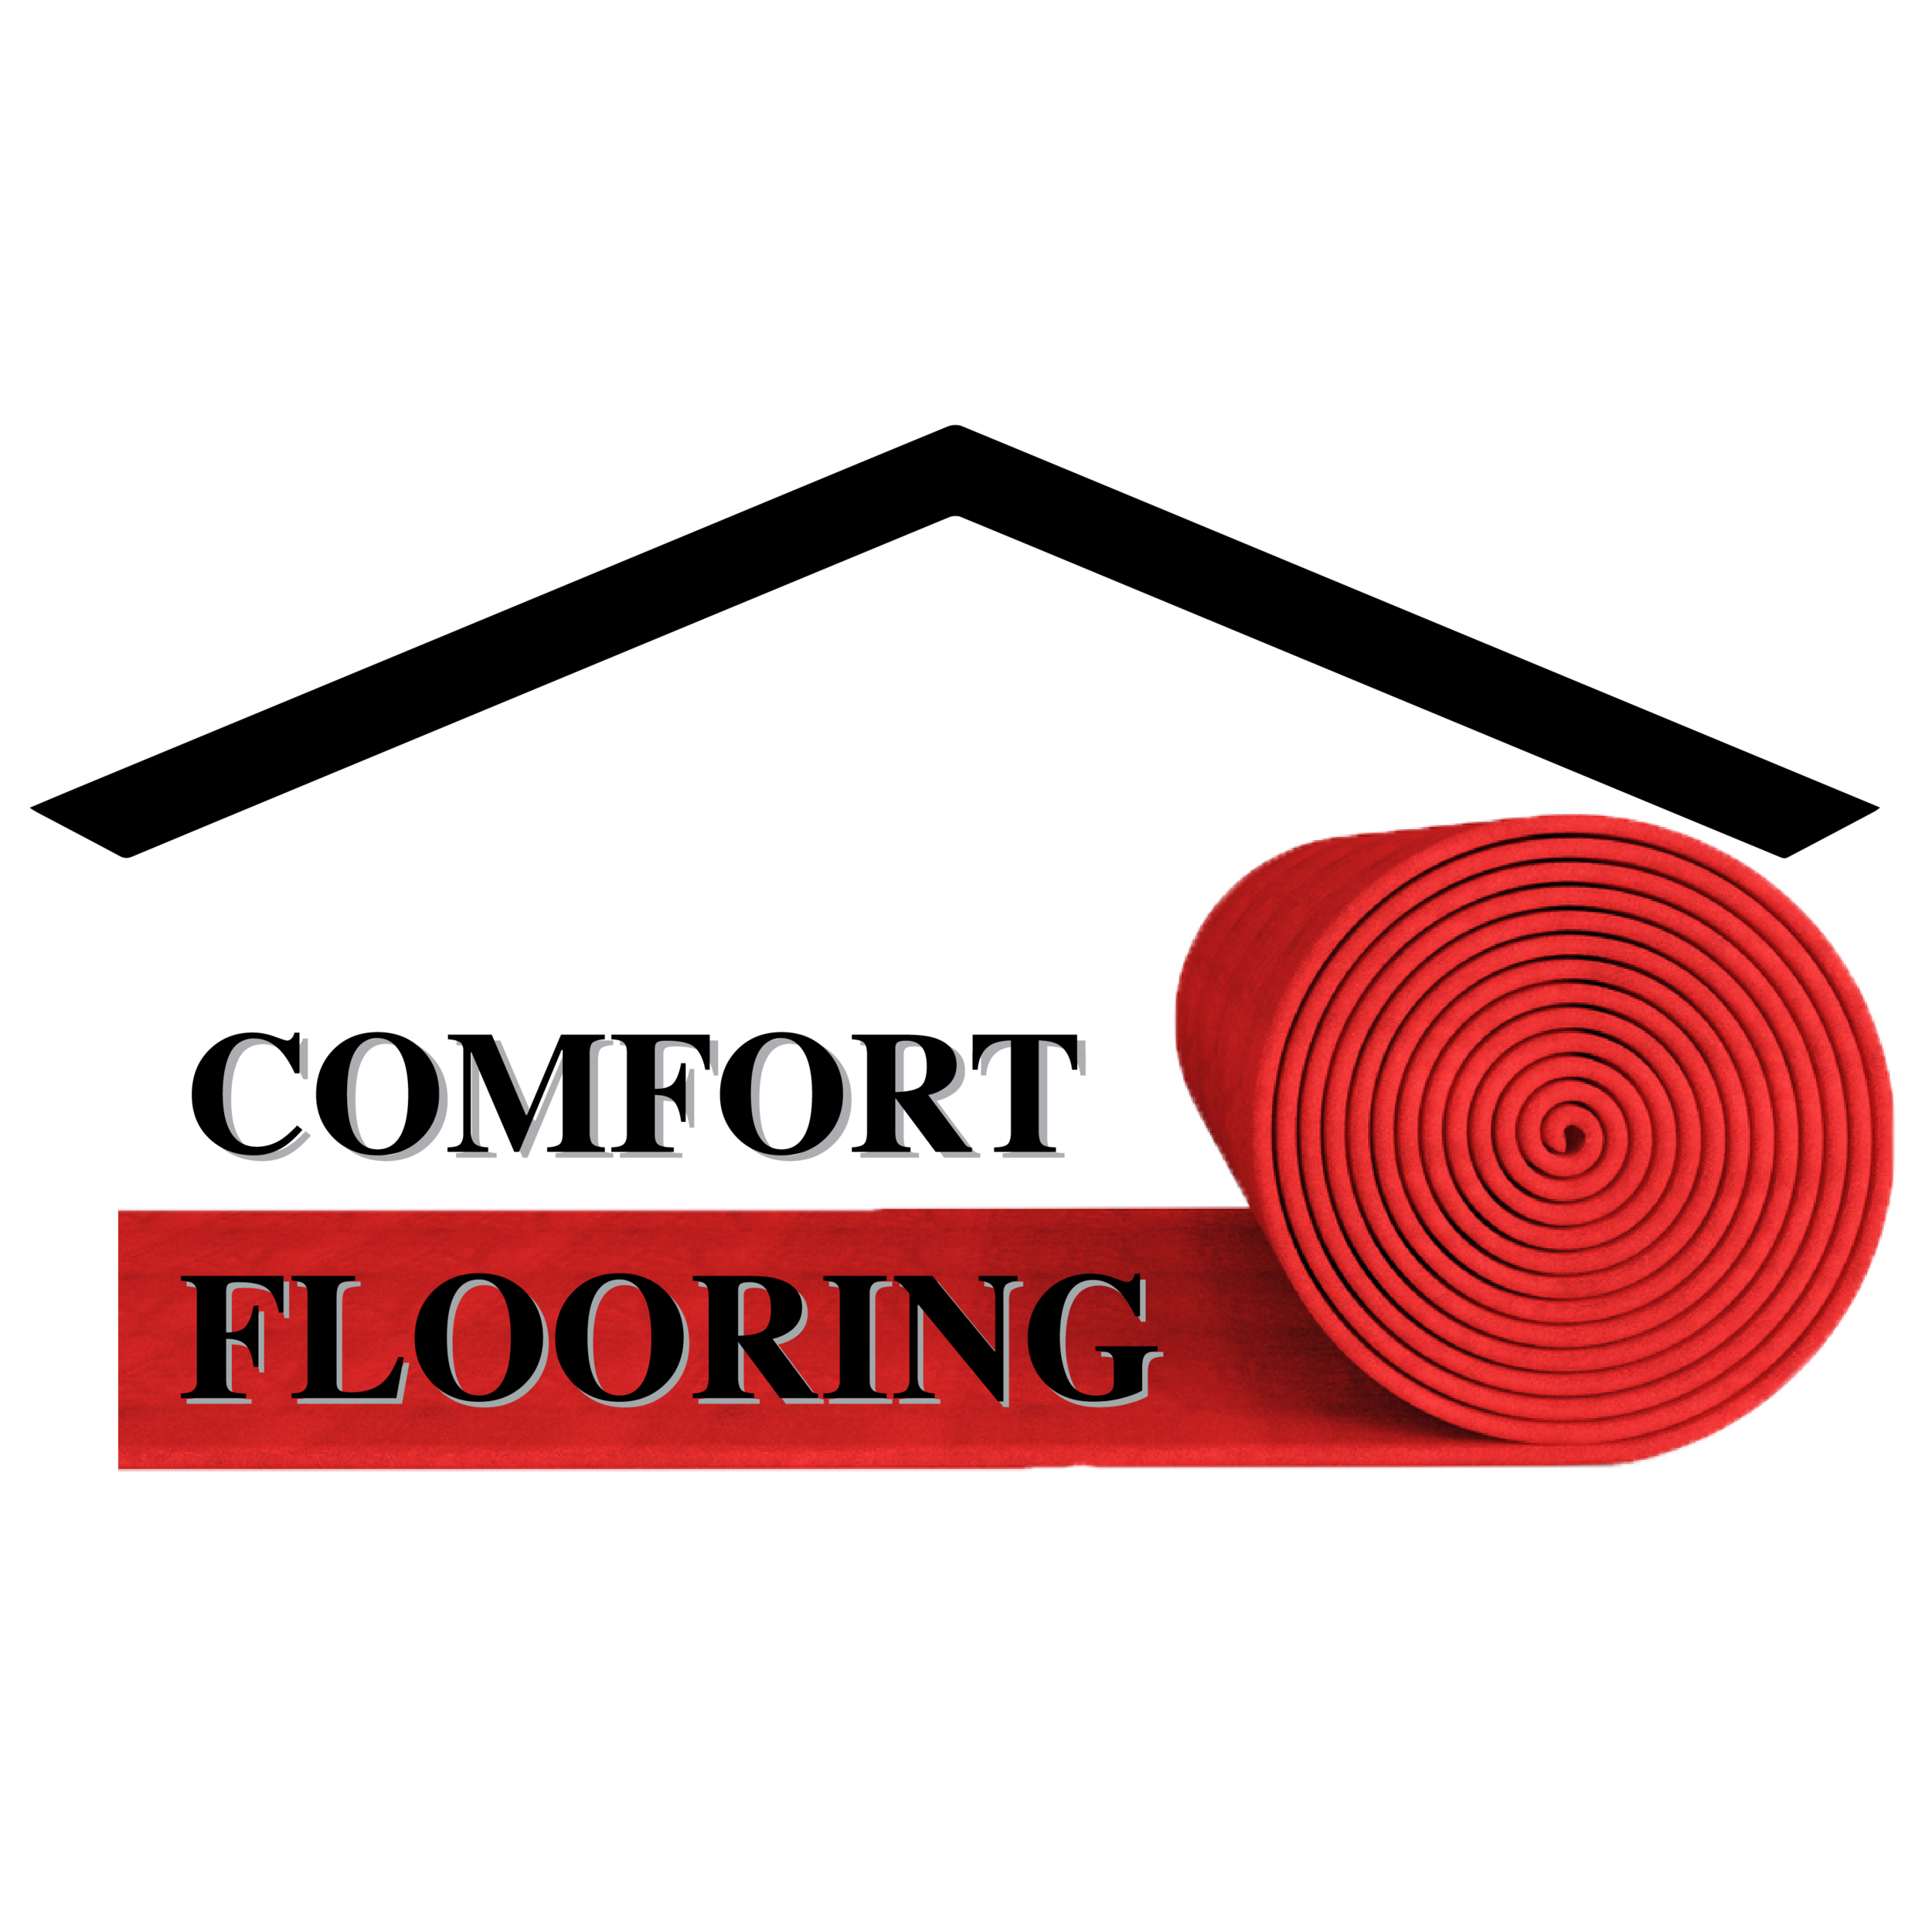 Comfort Flooring - Our flooring brand gives us access to all of the major manufacturers. We furnish and install beautiful and functional flooring in your home, clubhouse or office.All installation work is done in-house providing our customers with a wide selection of products.